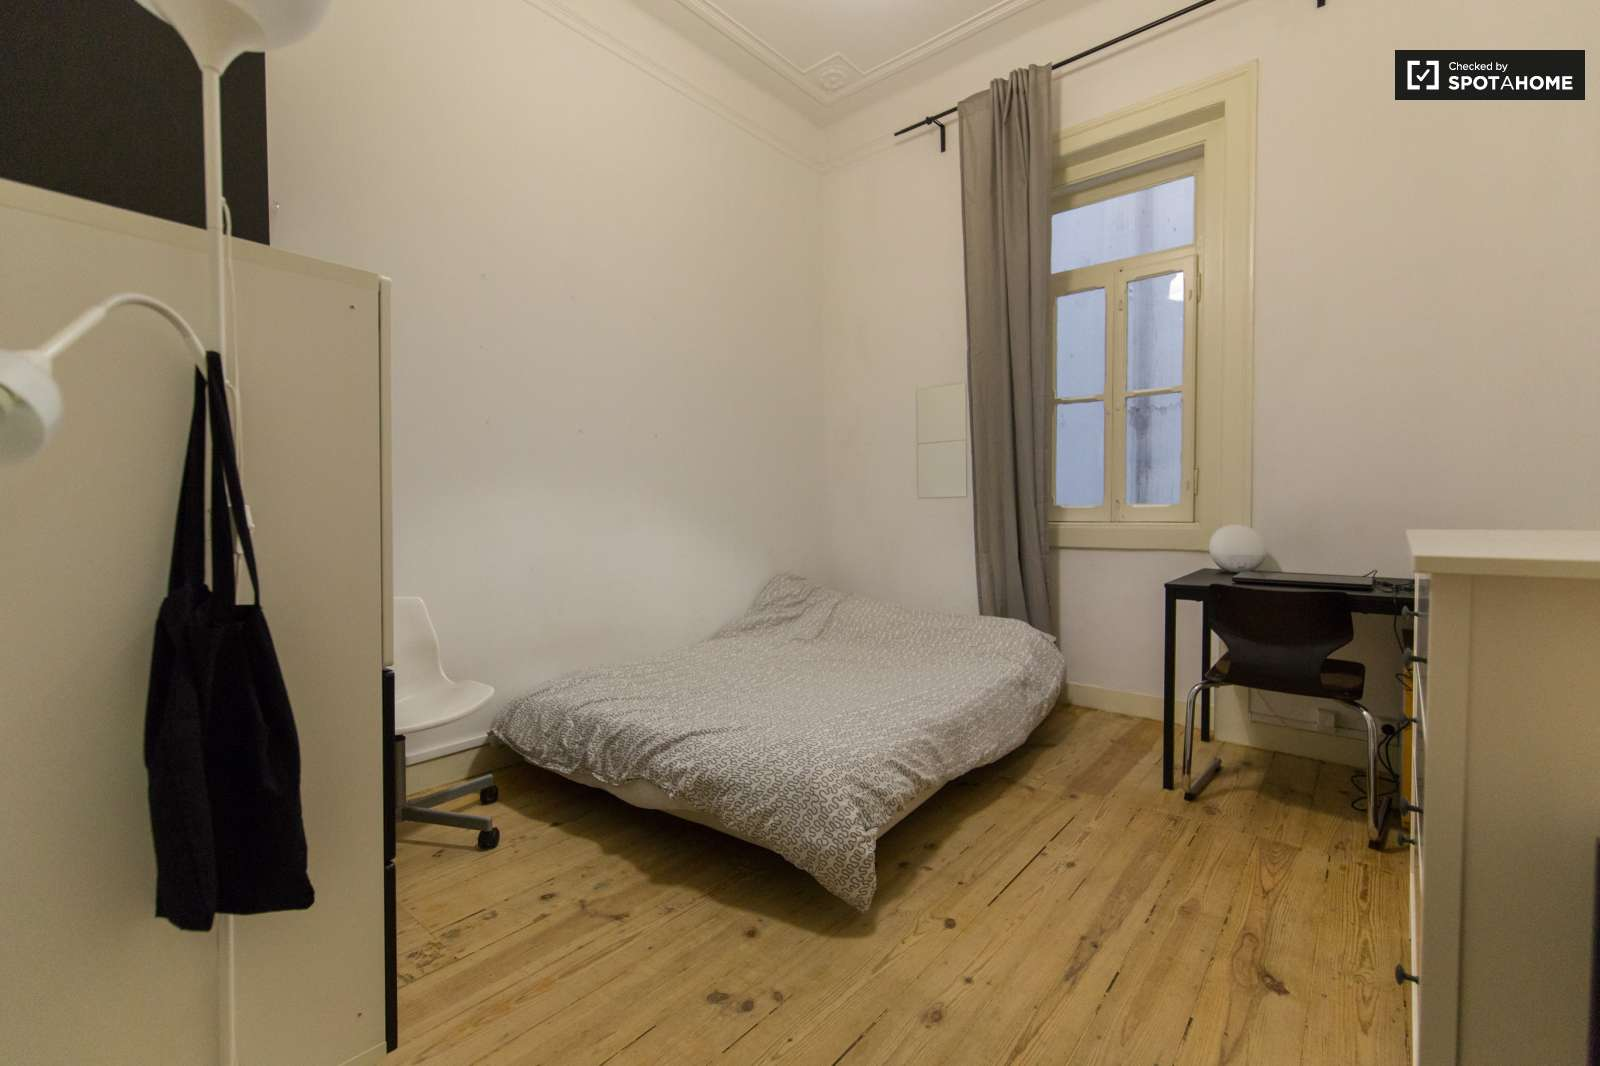 Shared Lady Bedroom For Rent In Odivelas Near Lisbon